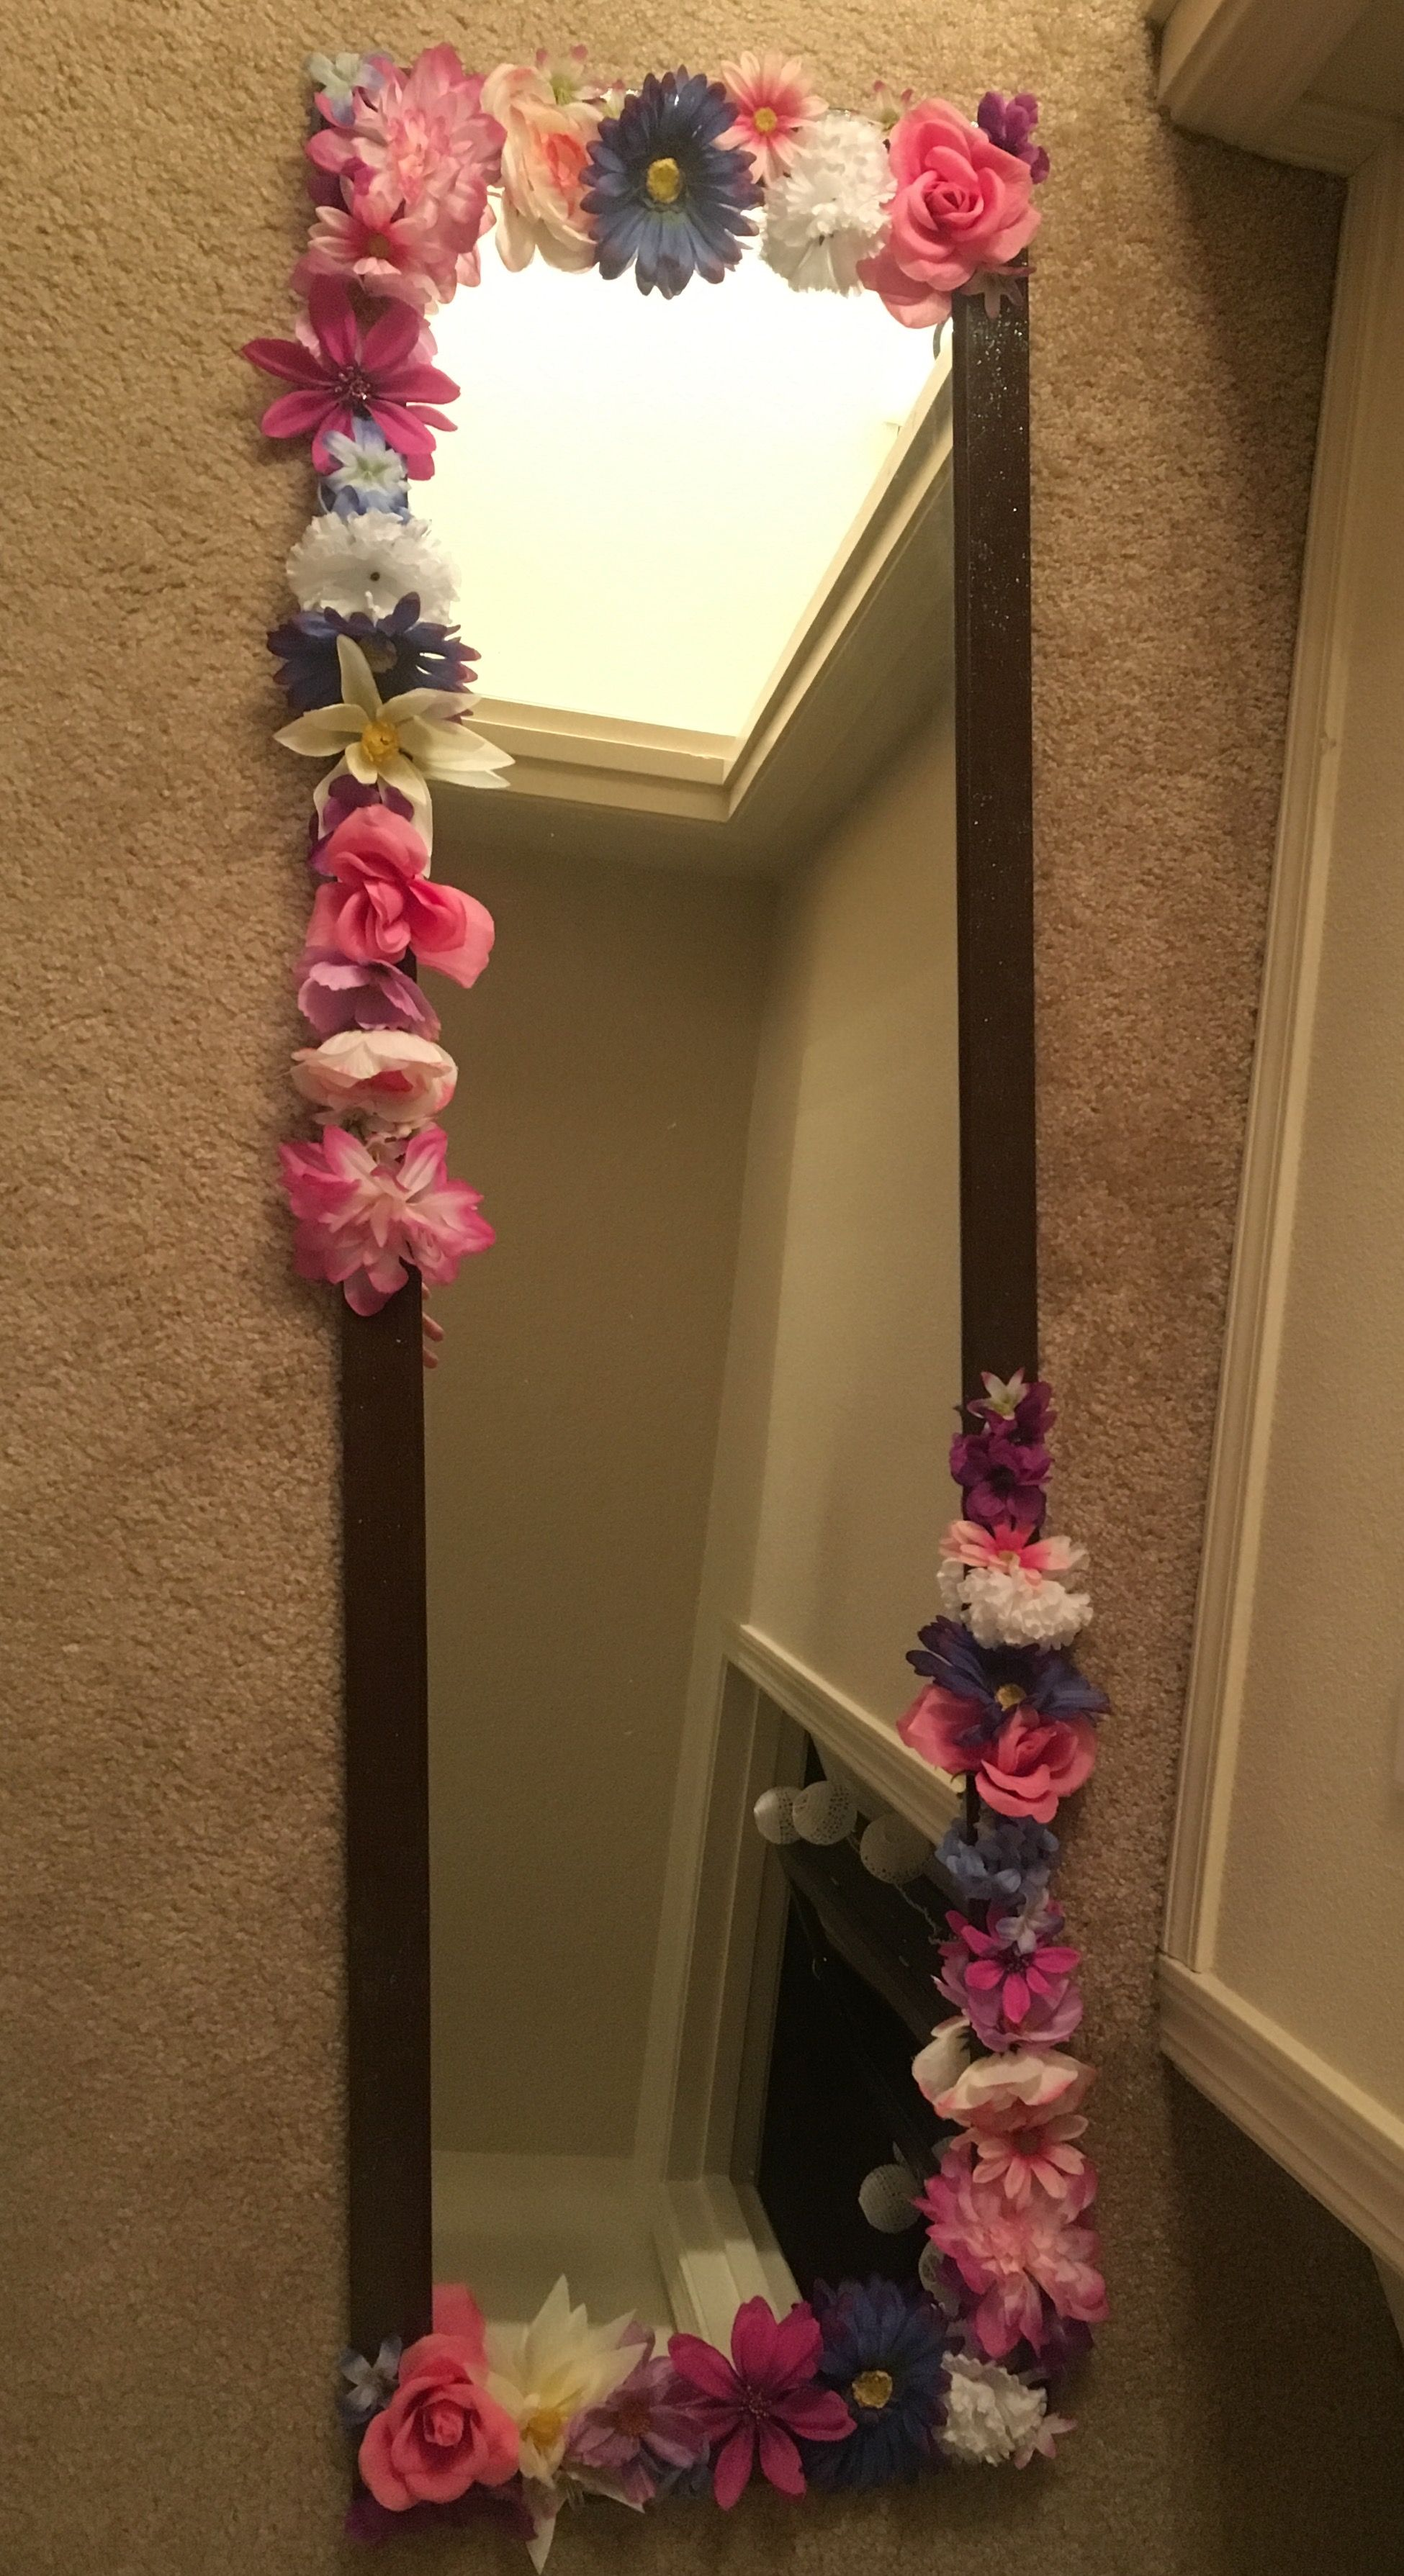 DIY Flower Mirror - super easy, just takes a little time and patience! I also painted the mirror frame earlier in a sparkle gloss glaze, because if I could have glitter on everything I would.